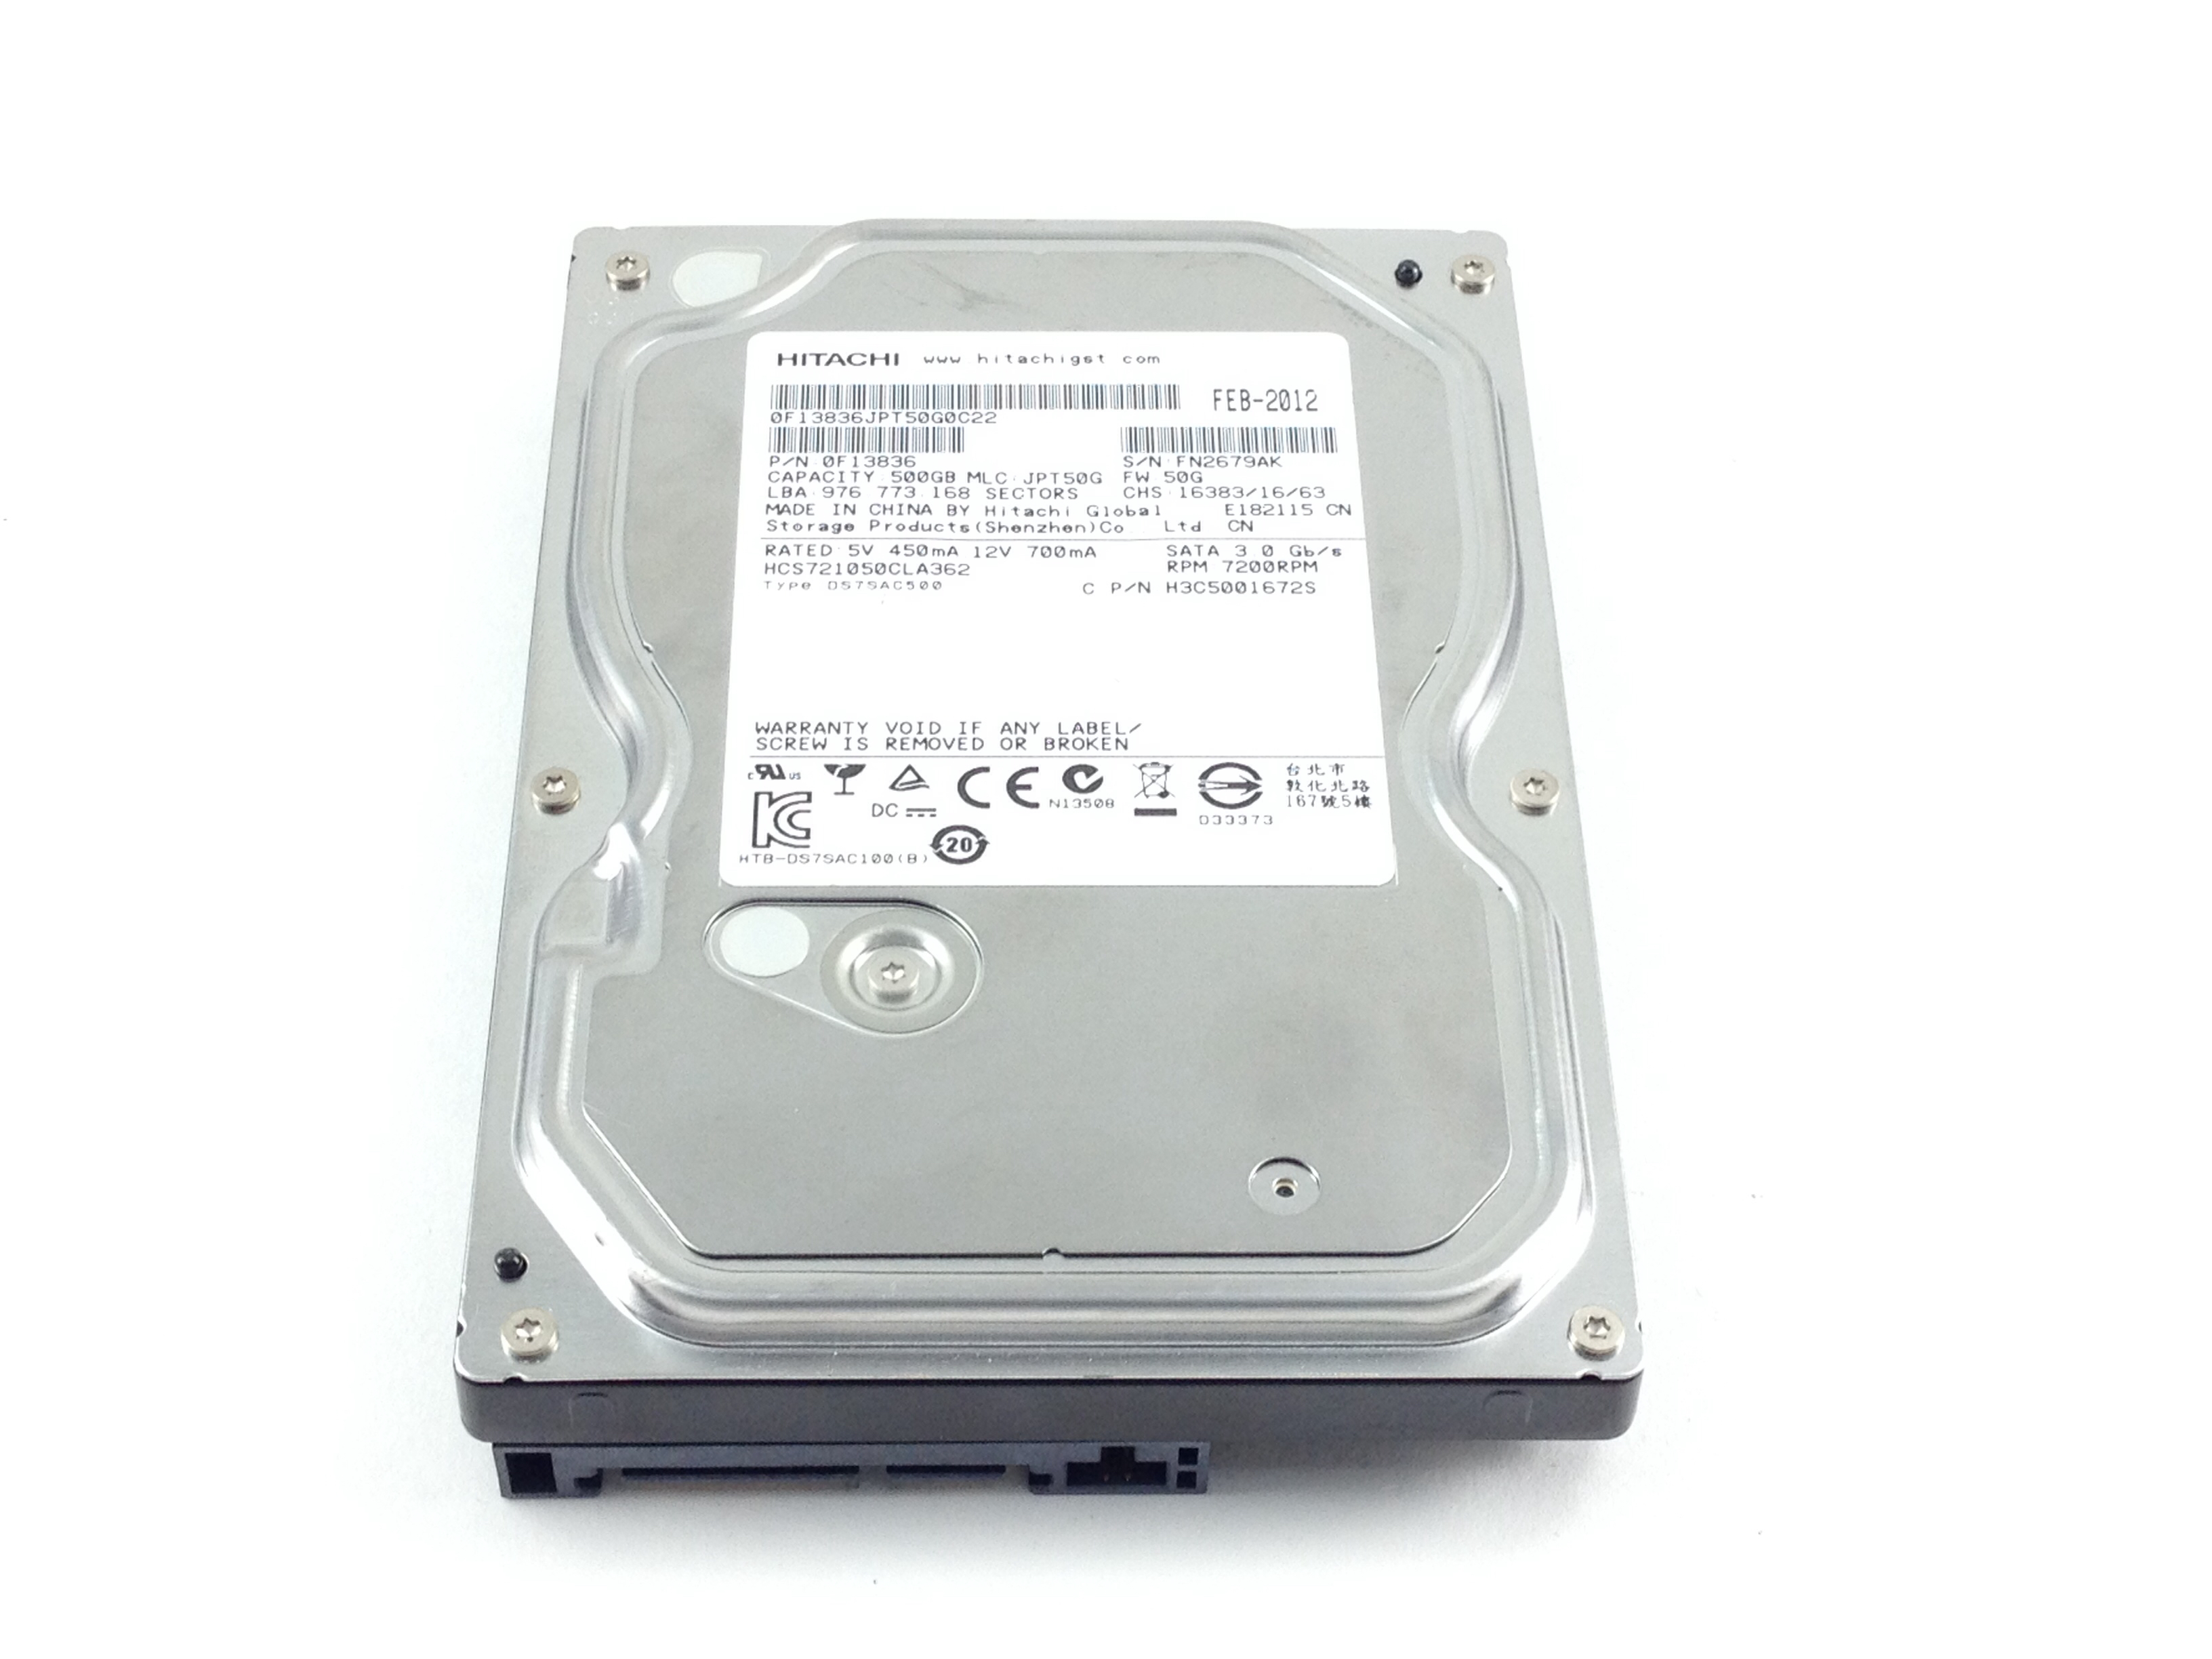 HITACHI 500GB 7.2K SATA 3.5'' HARD DRIVE (0F13836)